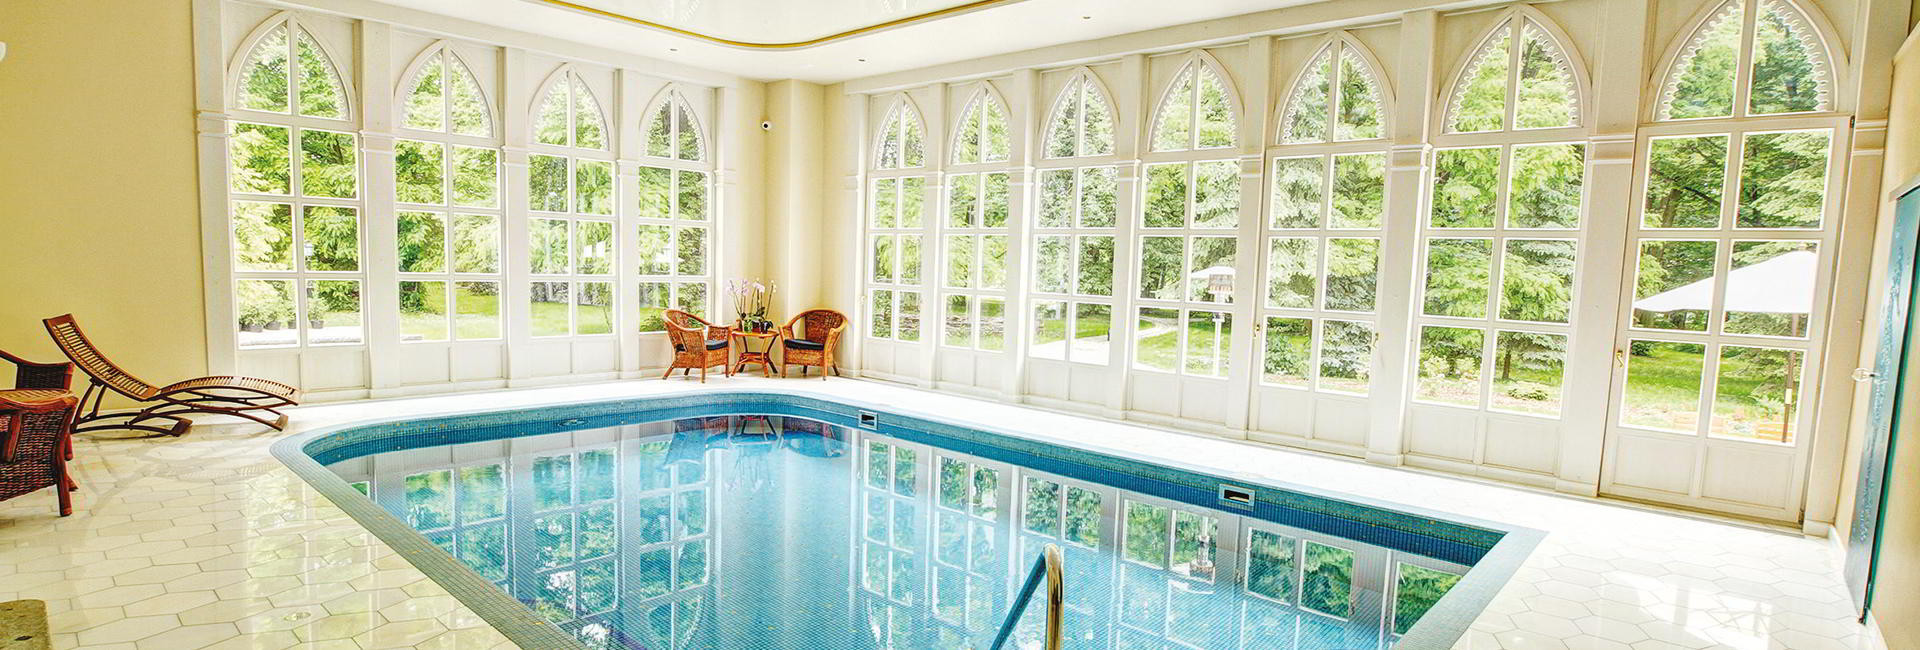 Pool at Sulislaw Palace in Grodkow near Wroclaw, Poland